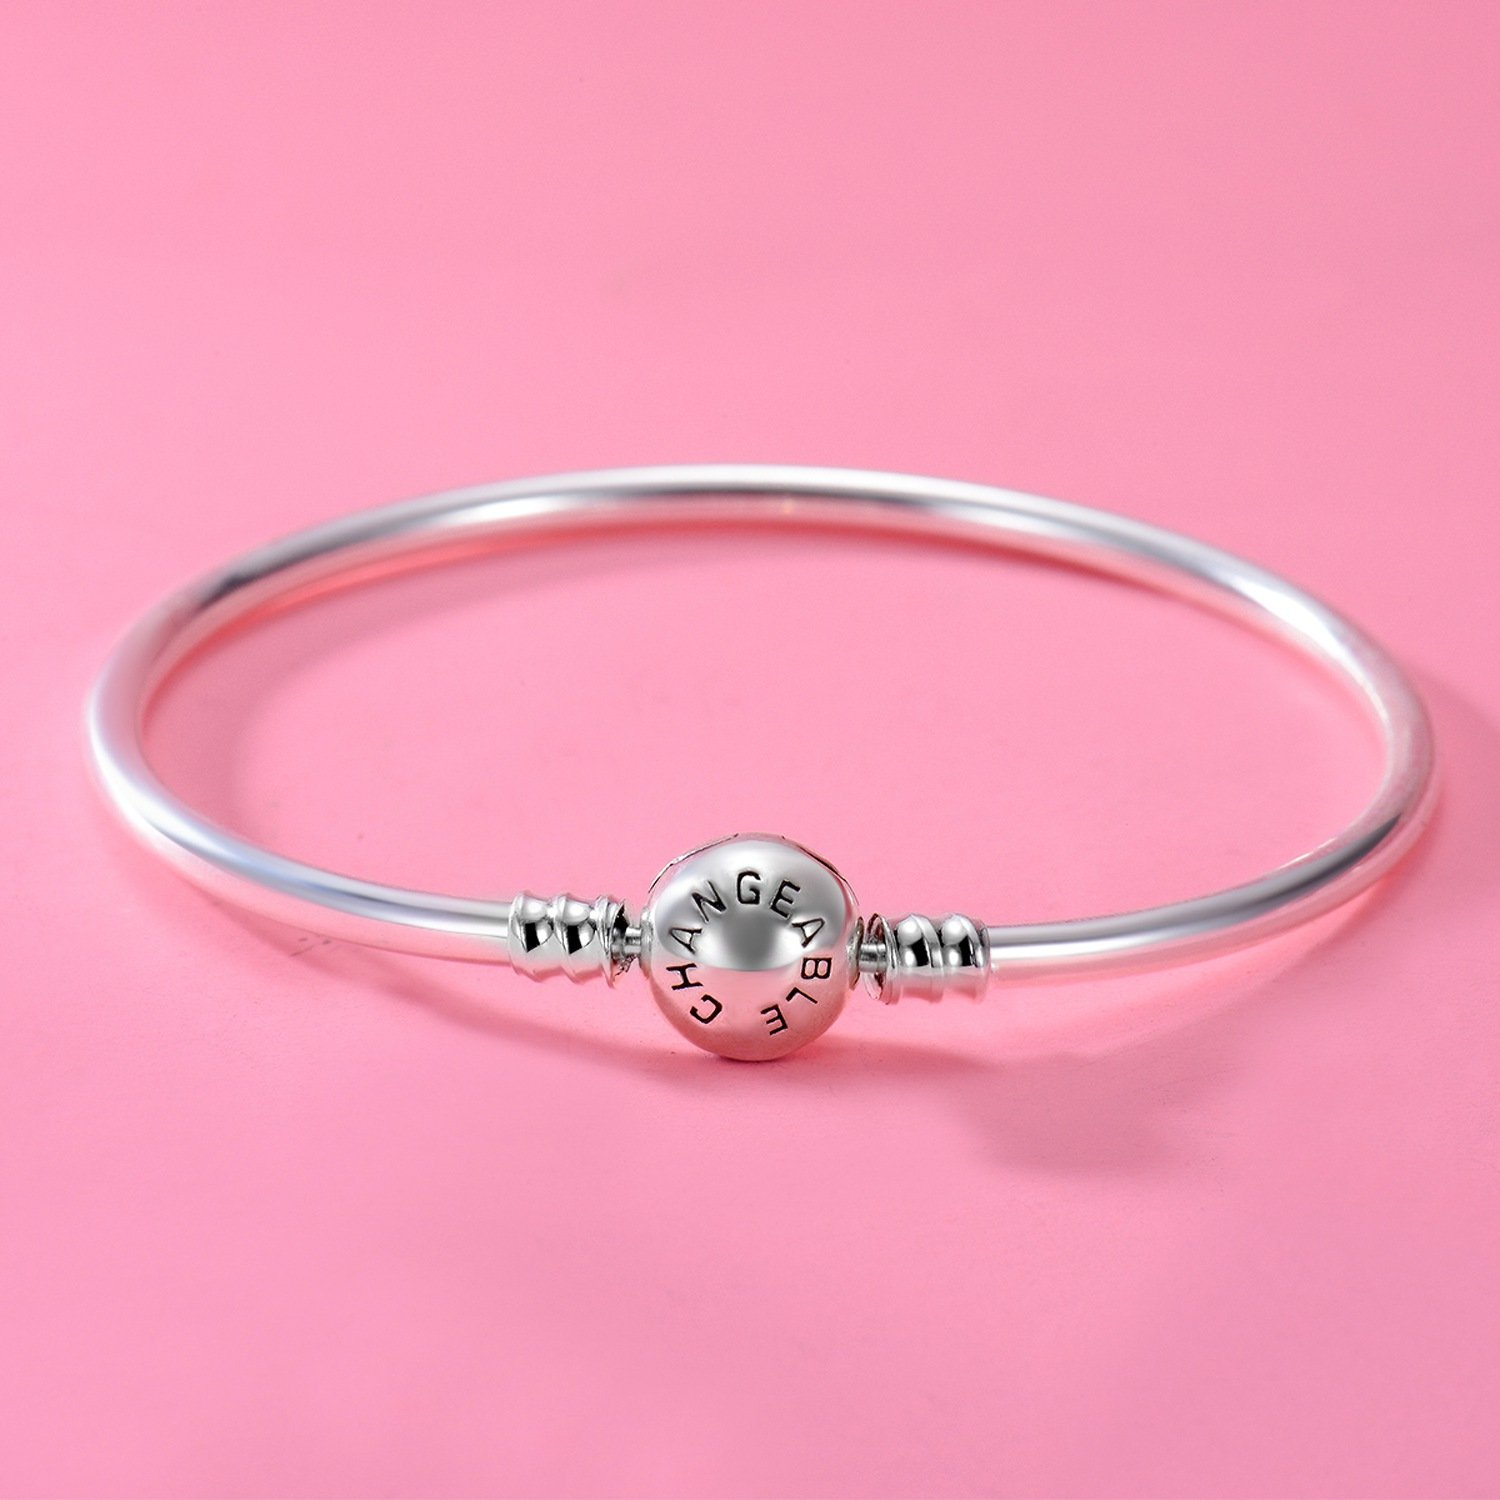 Changeable 925 Sterling Silver Women Charms Bracelet (Smooth Bangle) 19CM by Changeable (Image #3)